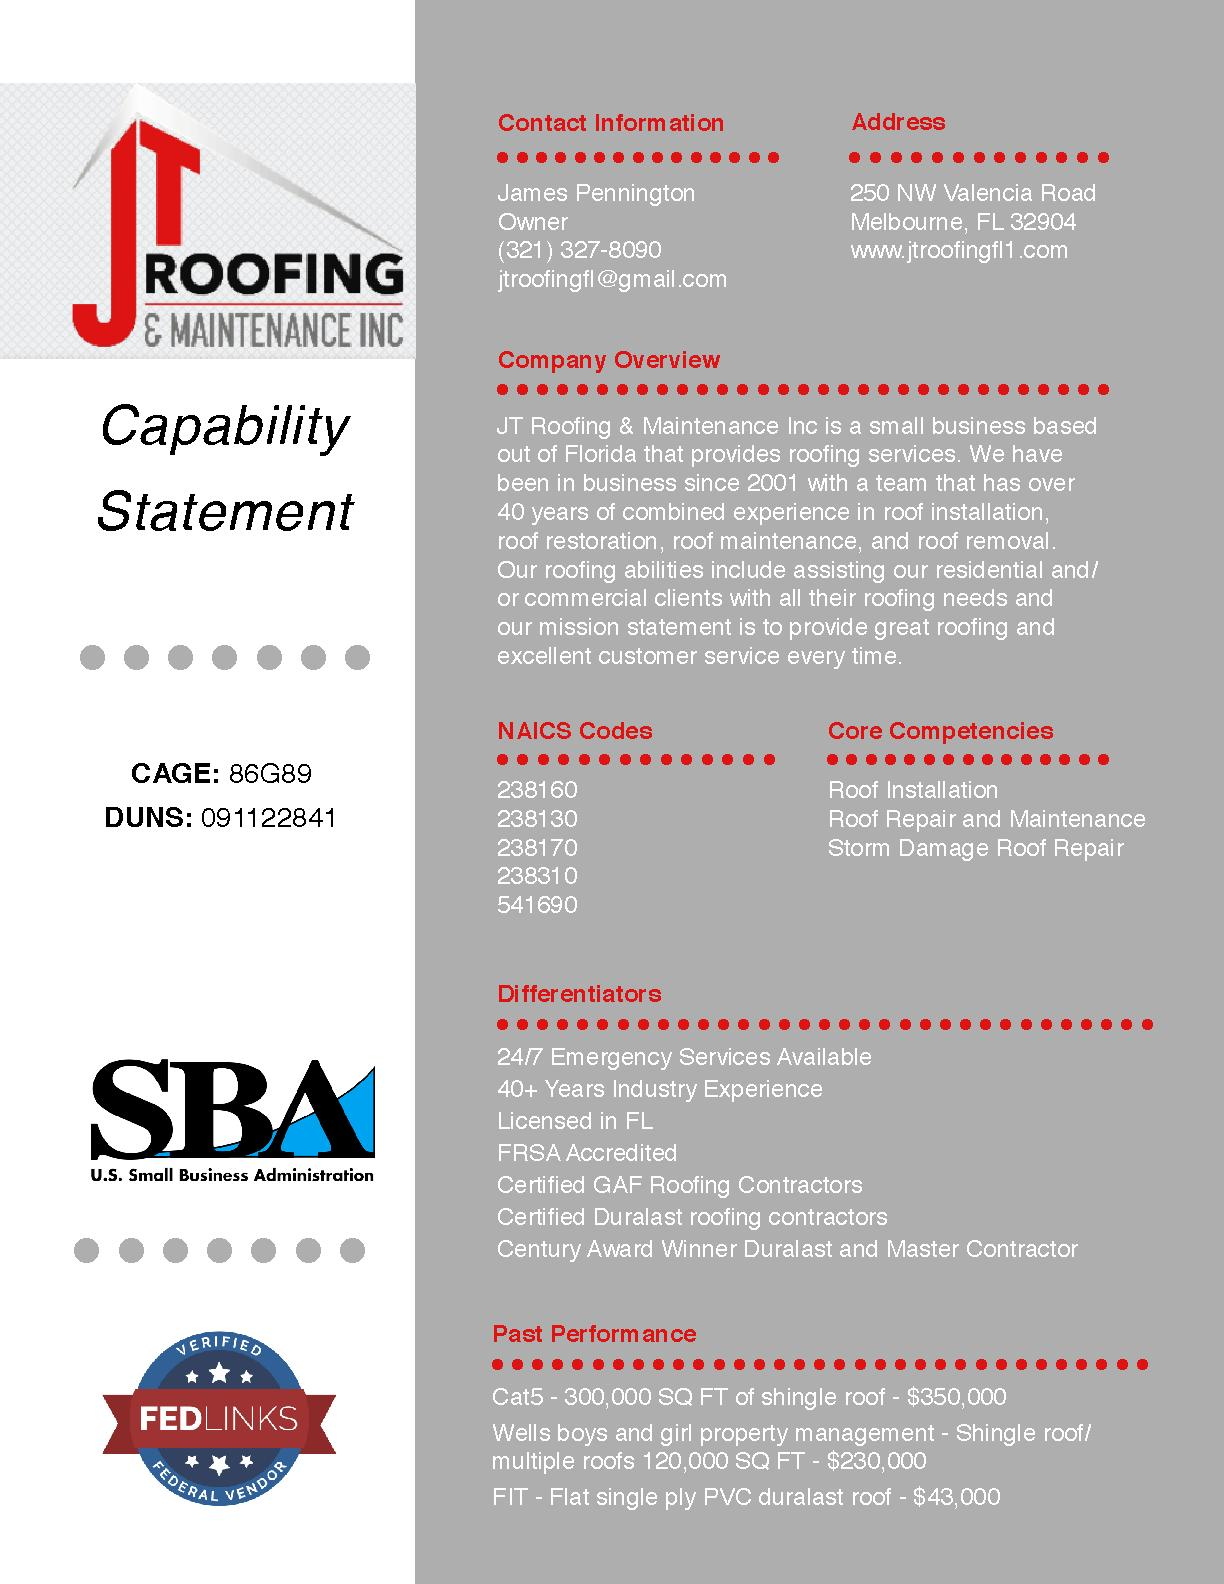 Jt roofing   maintenance inc